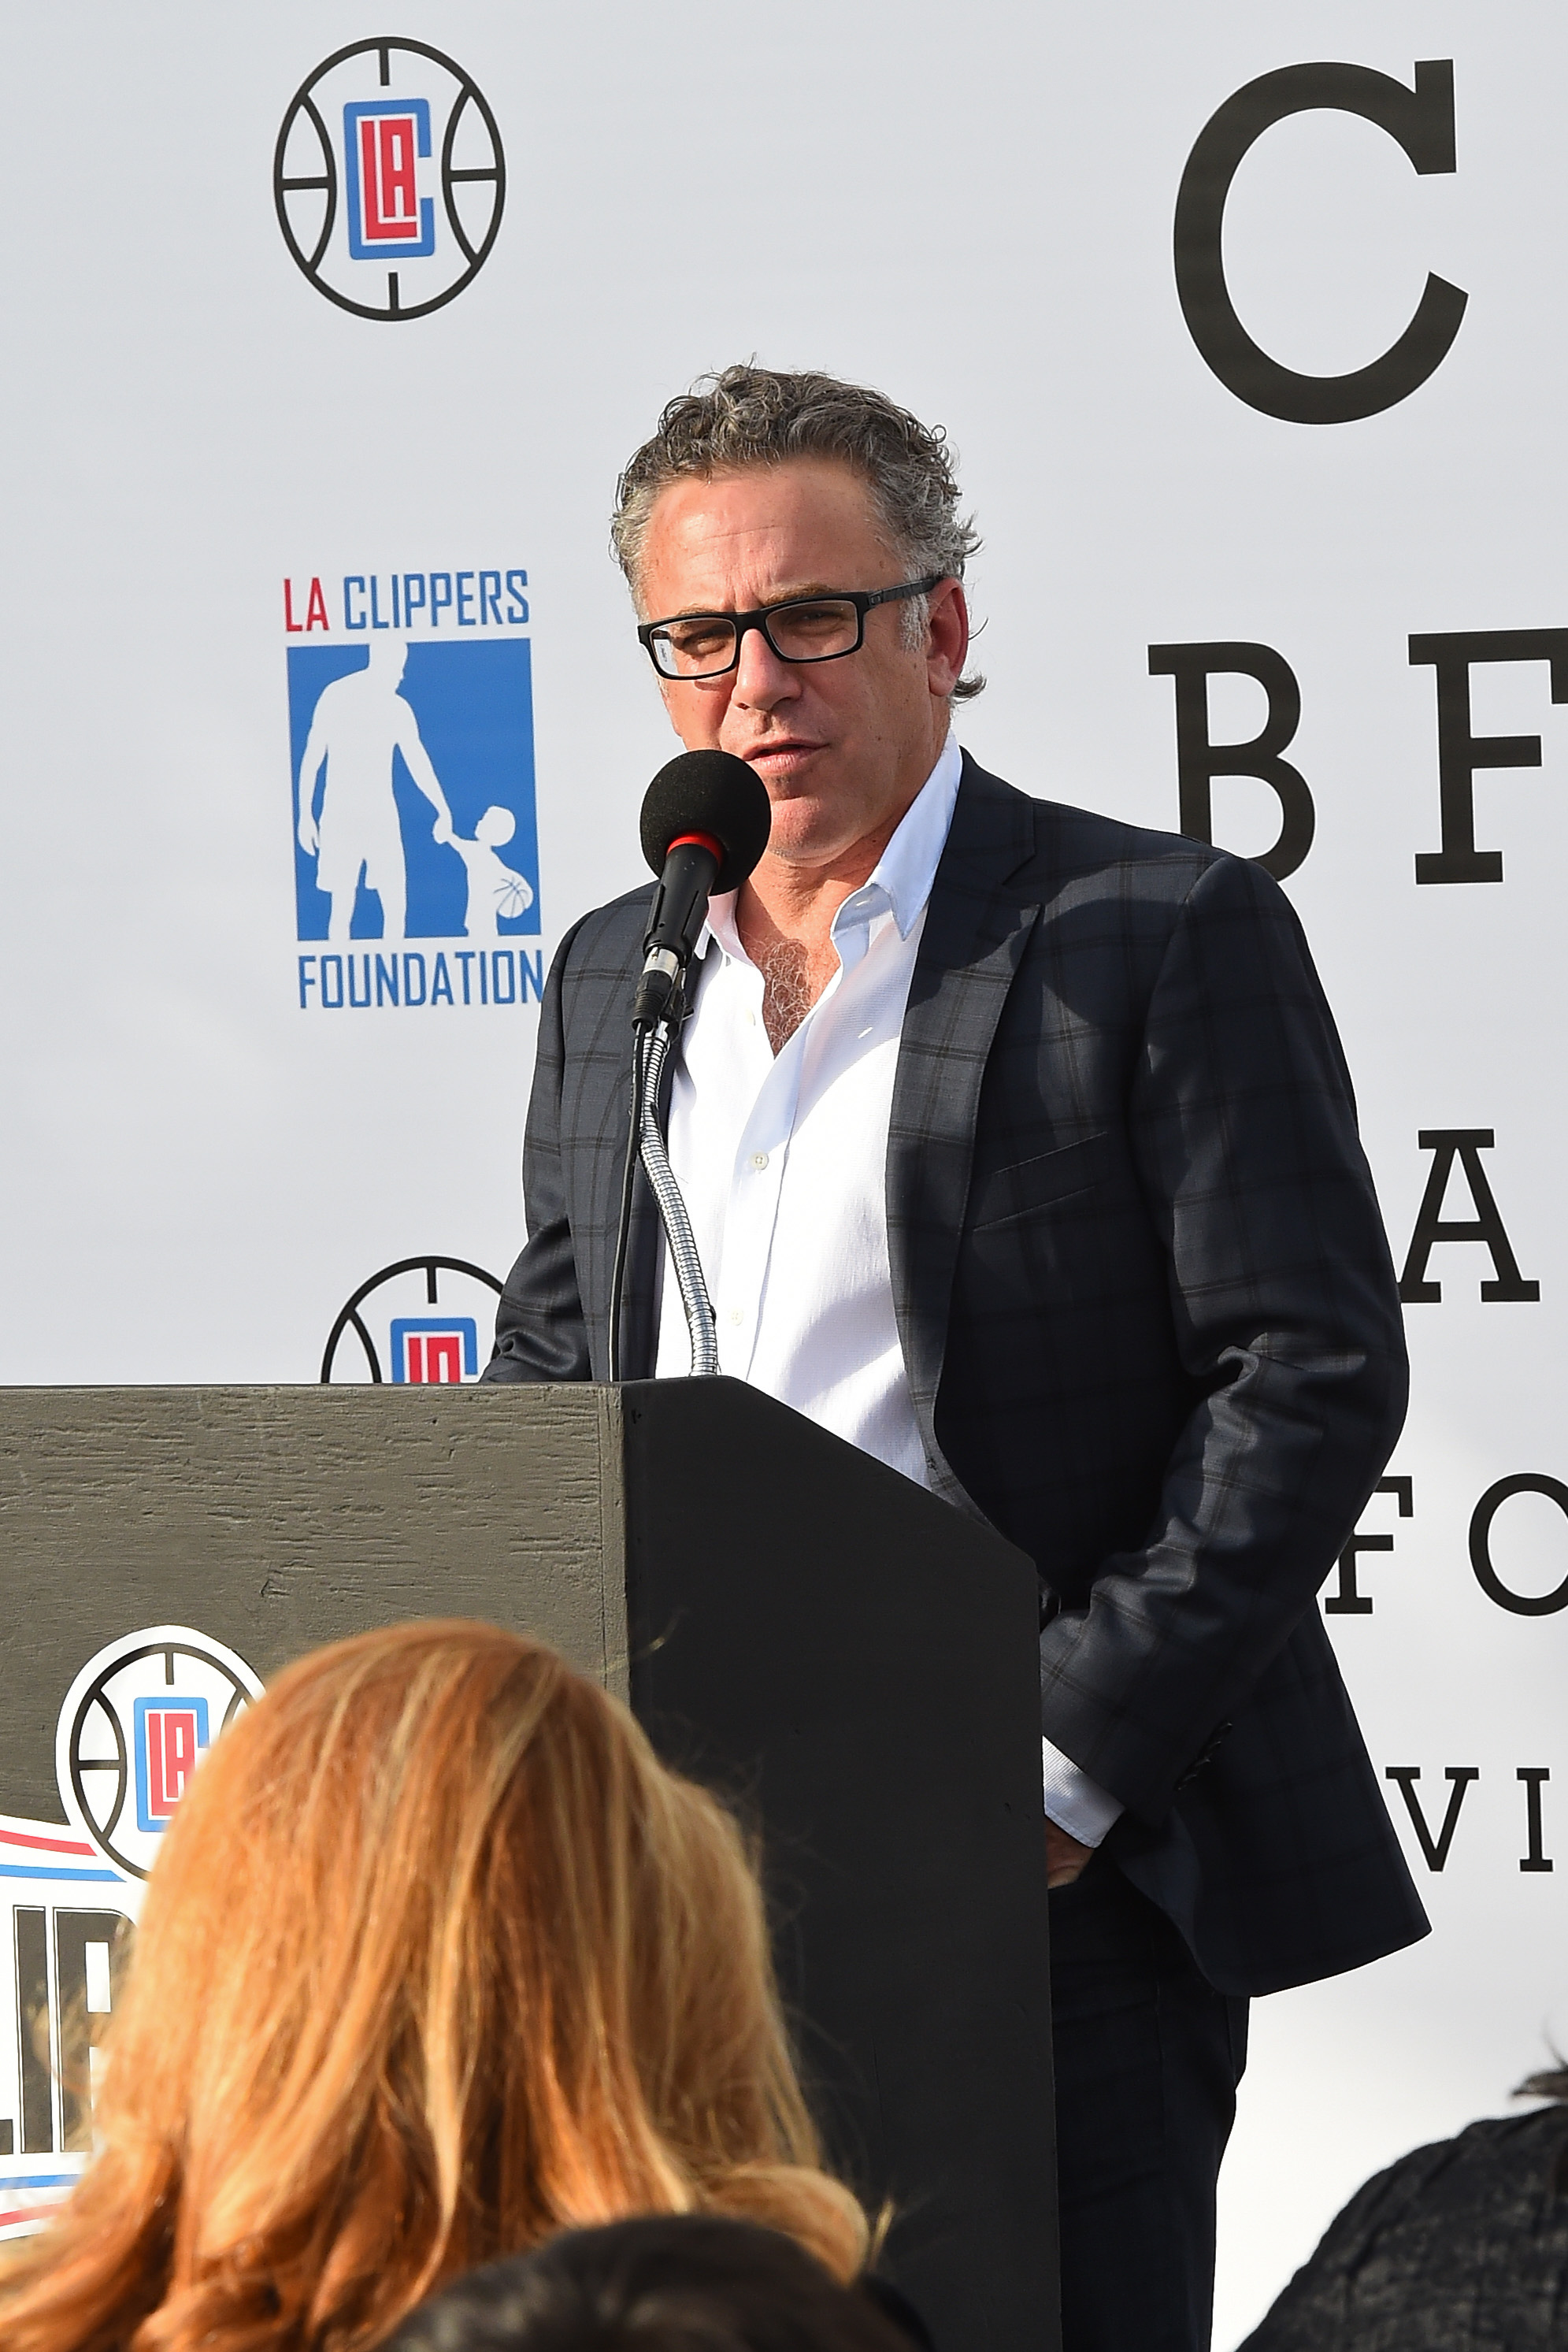 LA Clippers Foundation teams with Vision To Learn